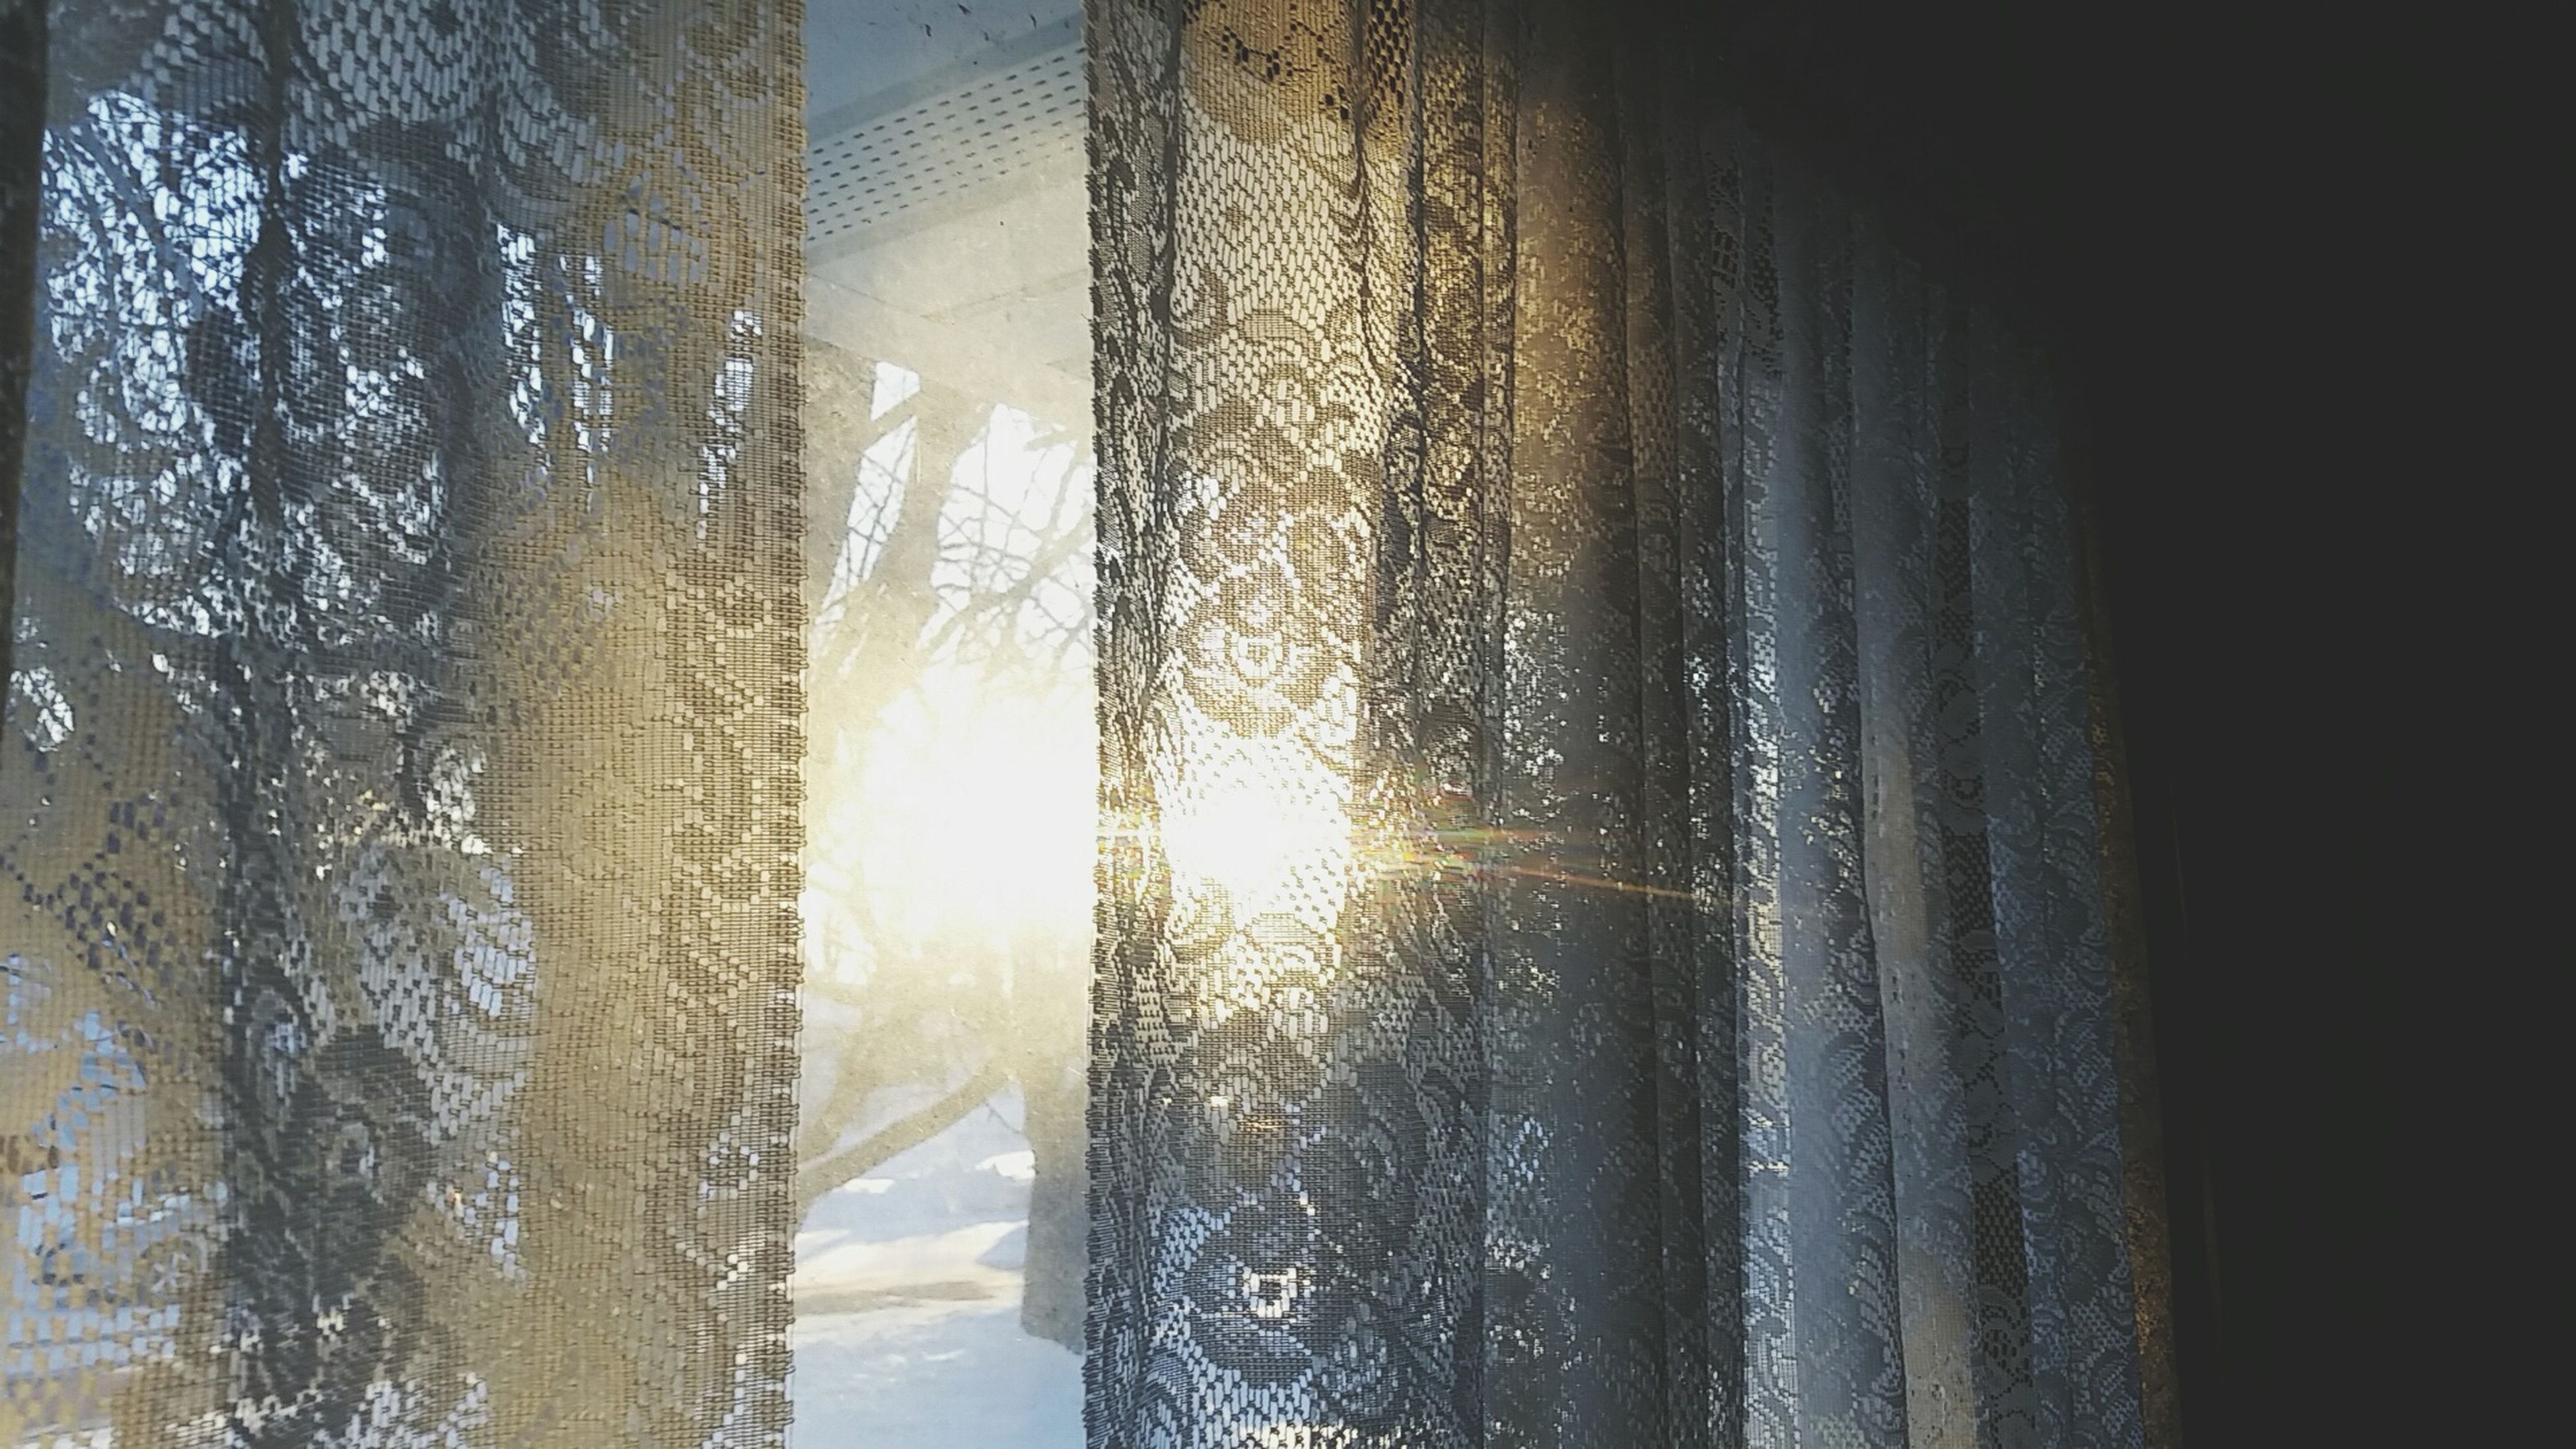 sunlight, window, sun, indoors, water, reflection, glass - material, sunbeam, close-up, cold temperature, lens flare, built structure, transparent, curtain, sunset, no people, architecture, day, sky, nature